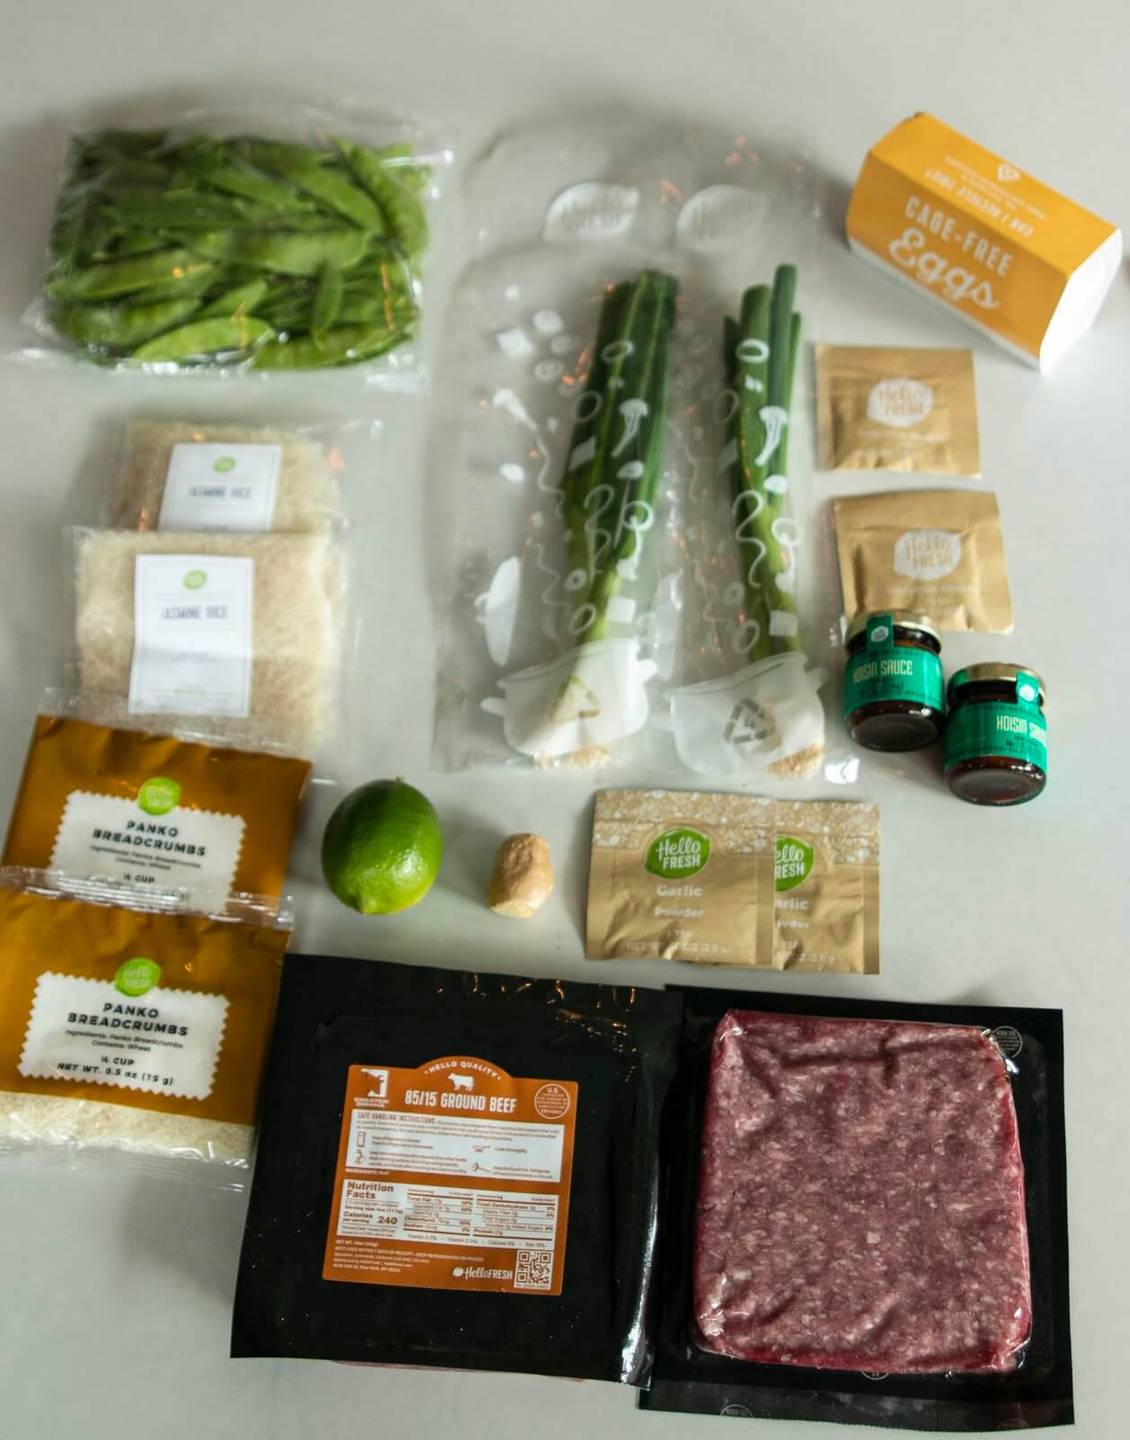 The prepackaged ingredients to make hoisin meatballs. Meal Kits pbs rewire